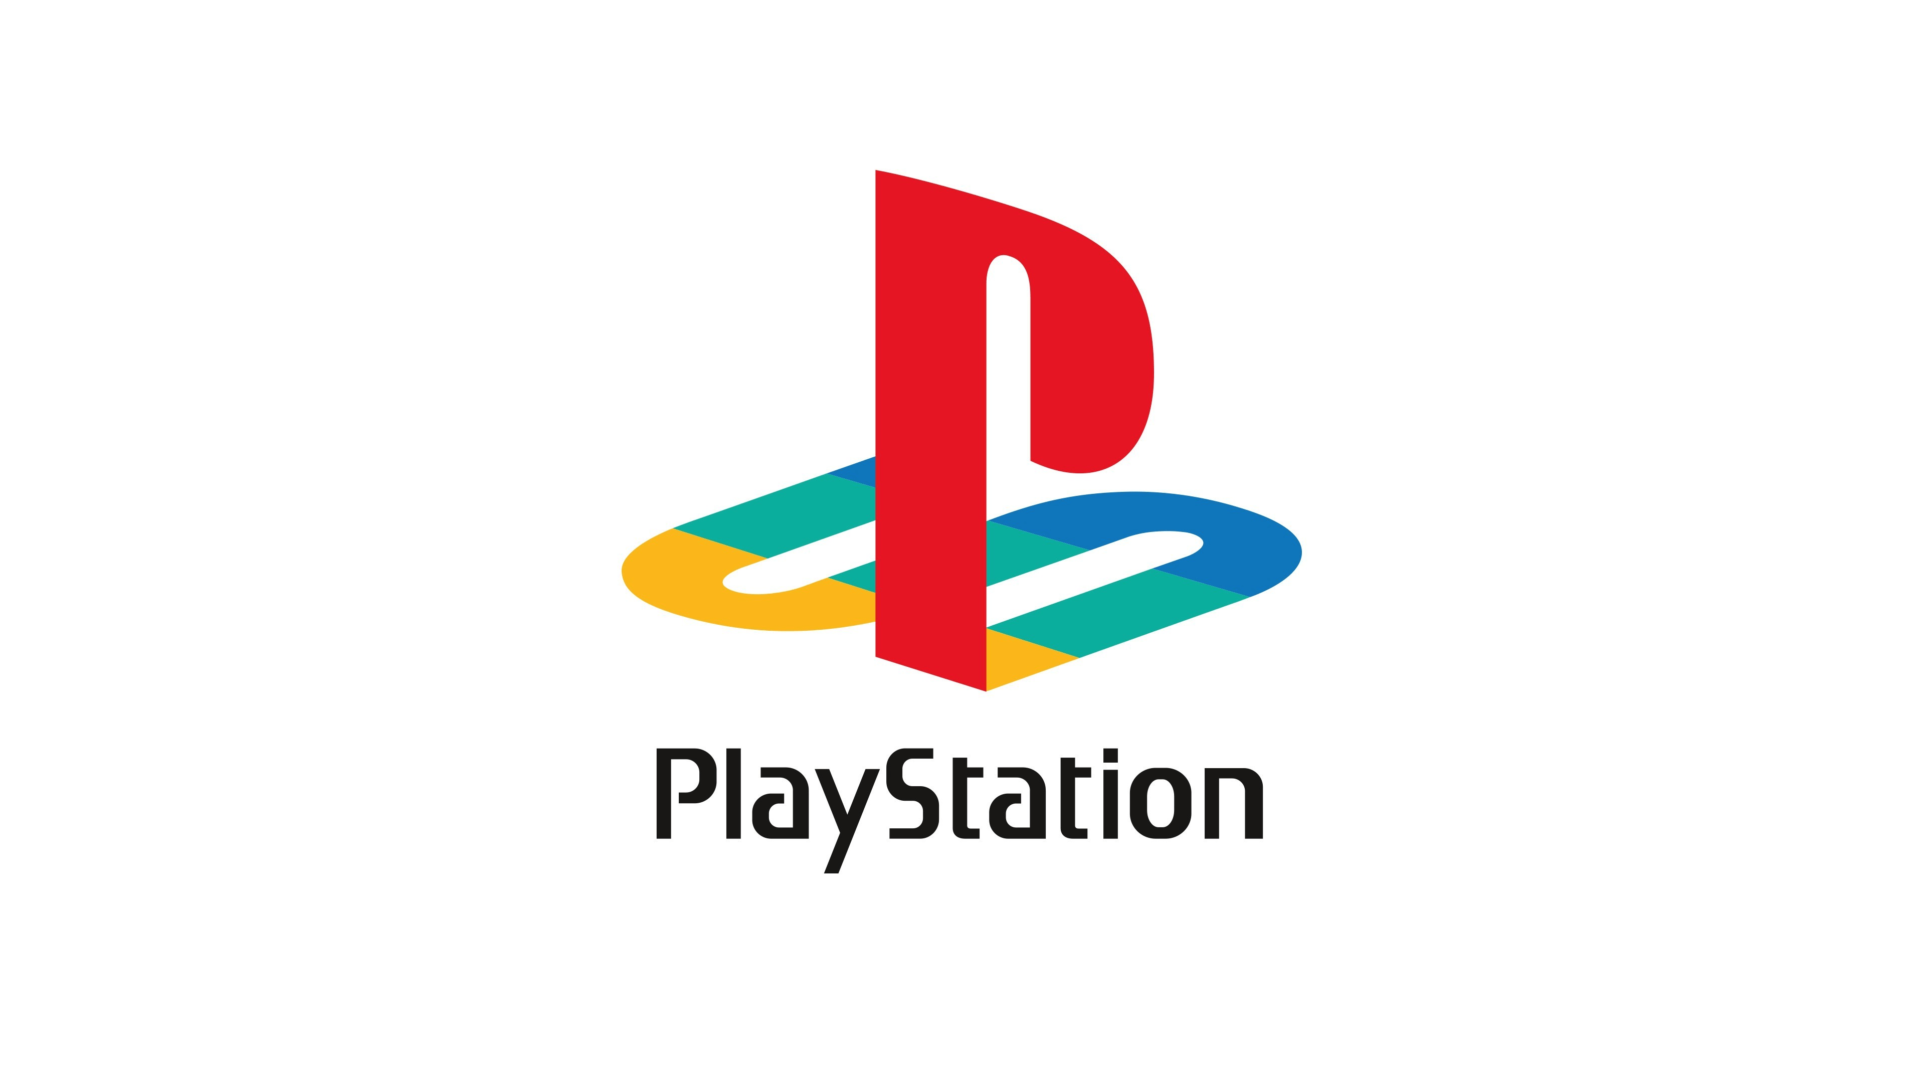 Ps5 And Xbox Scarlett Cyberpunk 2077 Expects 4k Raytracing And